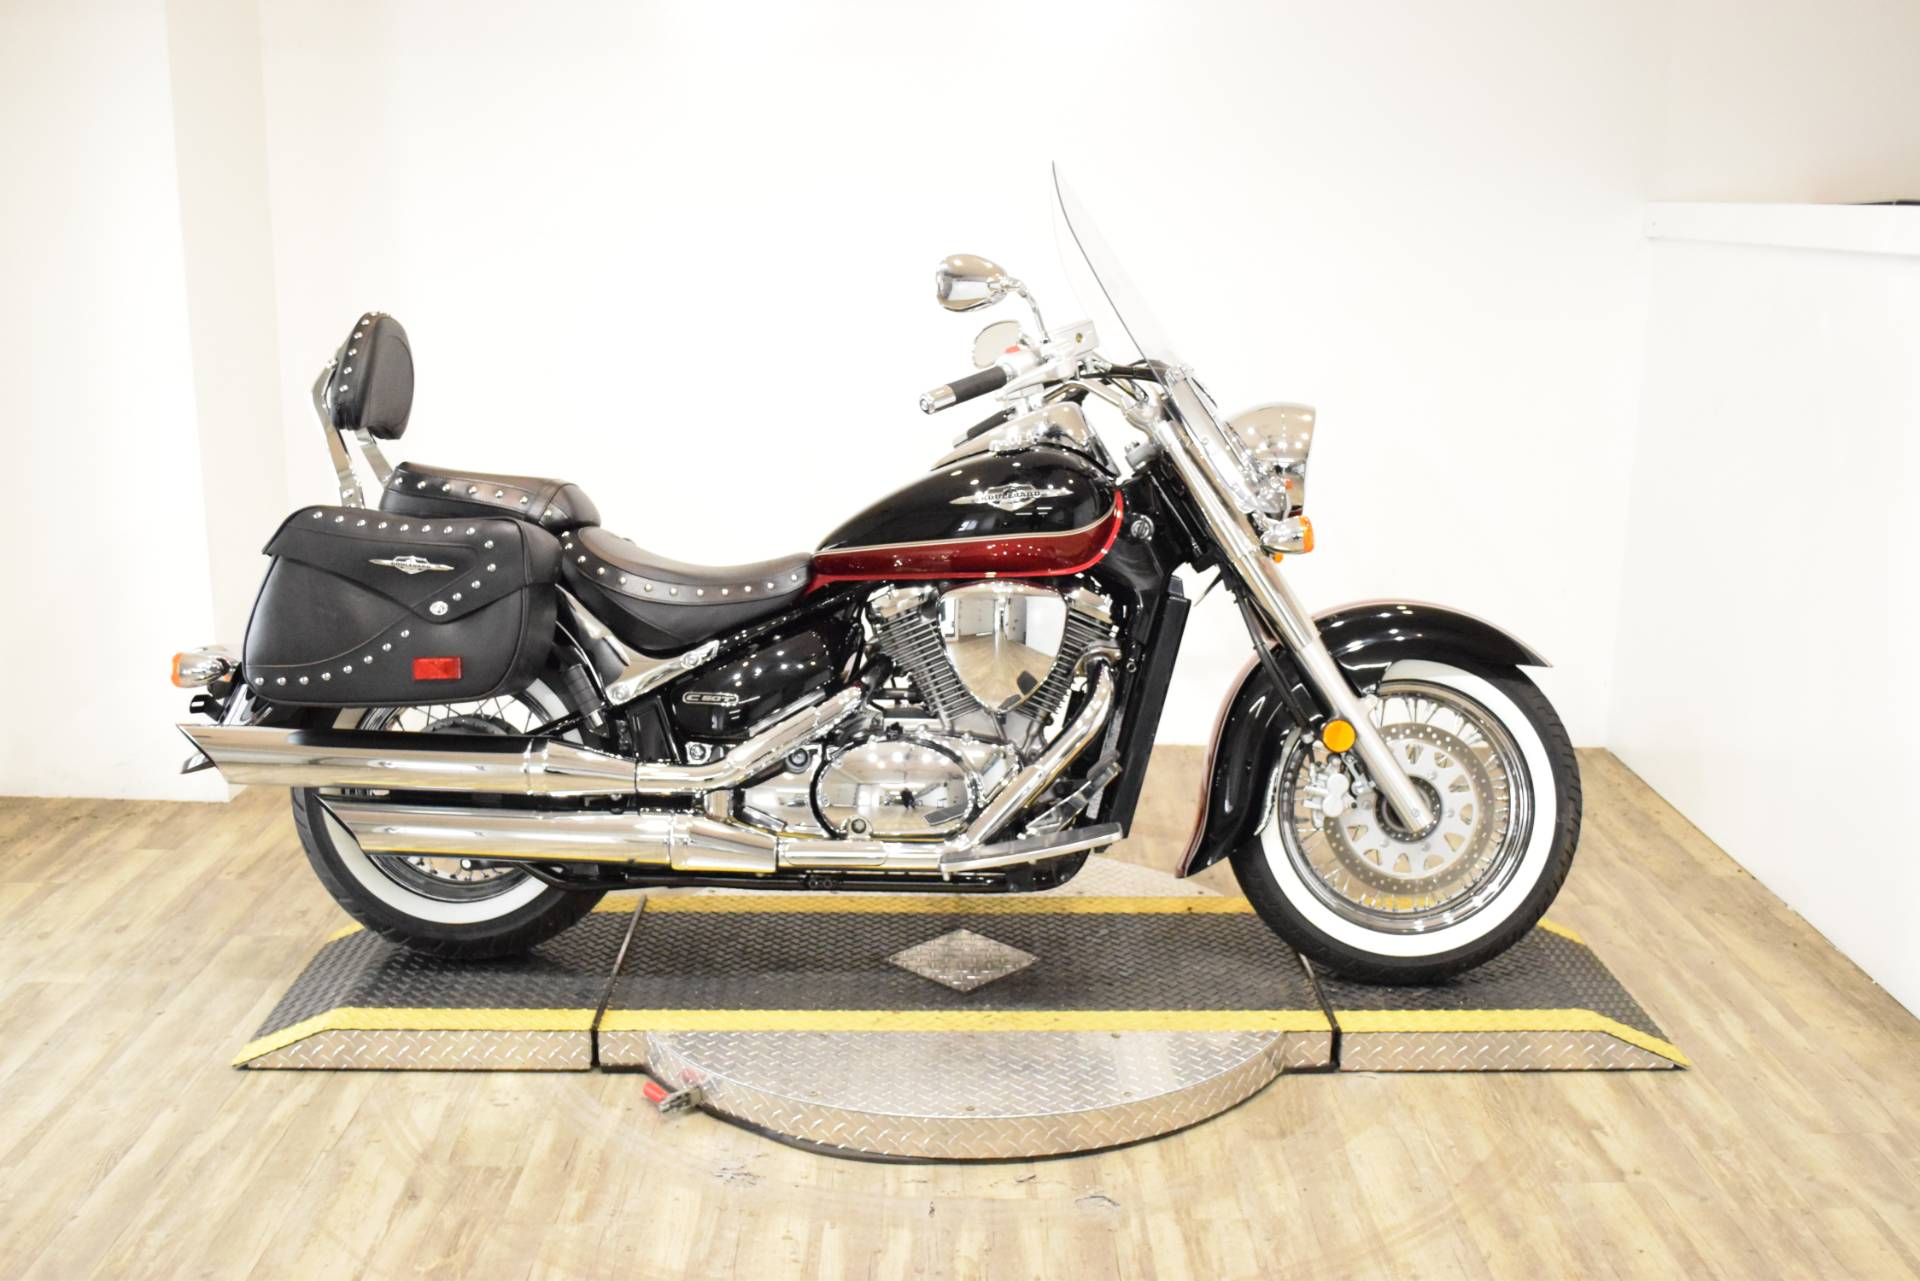 2013 Suzuki C50T BOULEVARD in Wauconda, Illinois - Photo 1